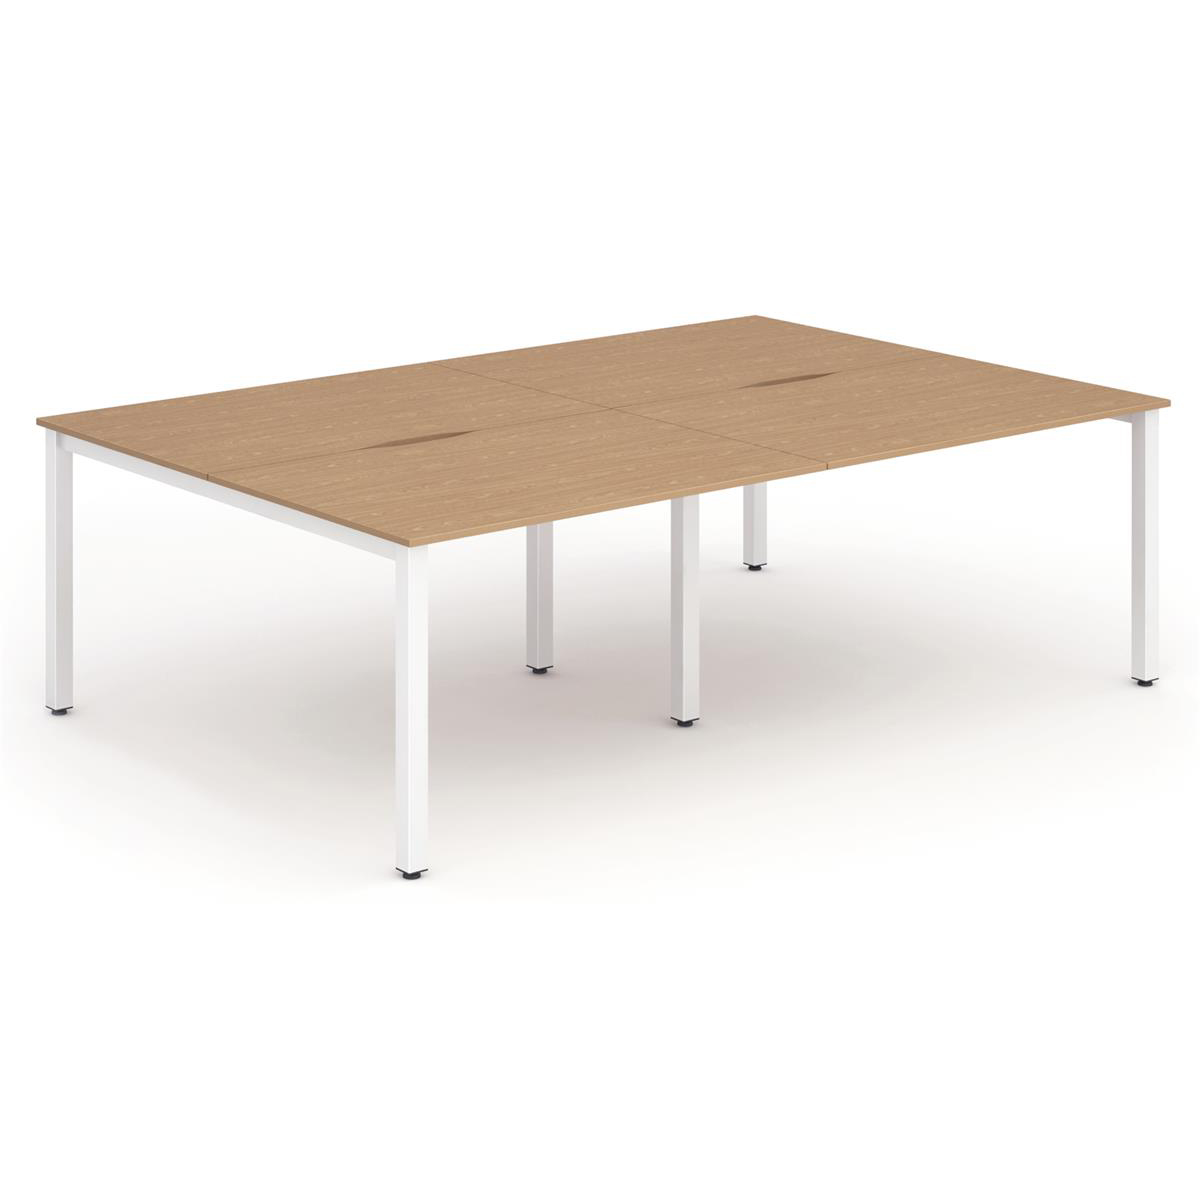 Trexus Bench Desk 4 Person Back to Back Configuration White Leg 2400x1600mm Oak Ref BE238